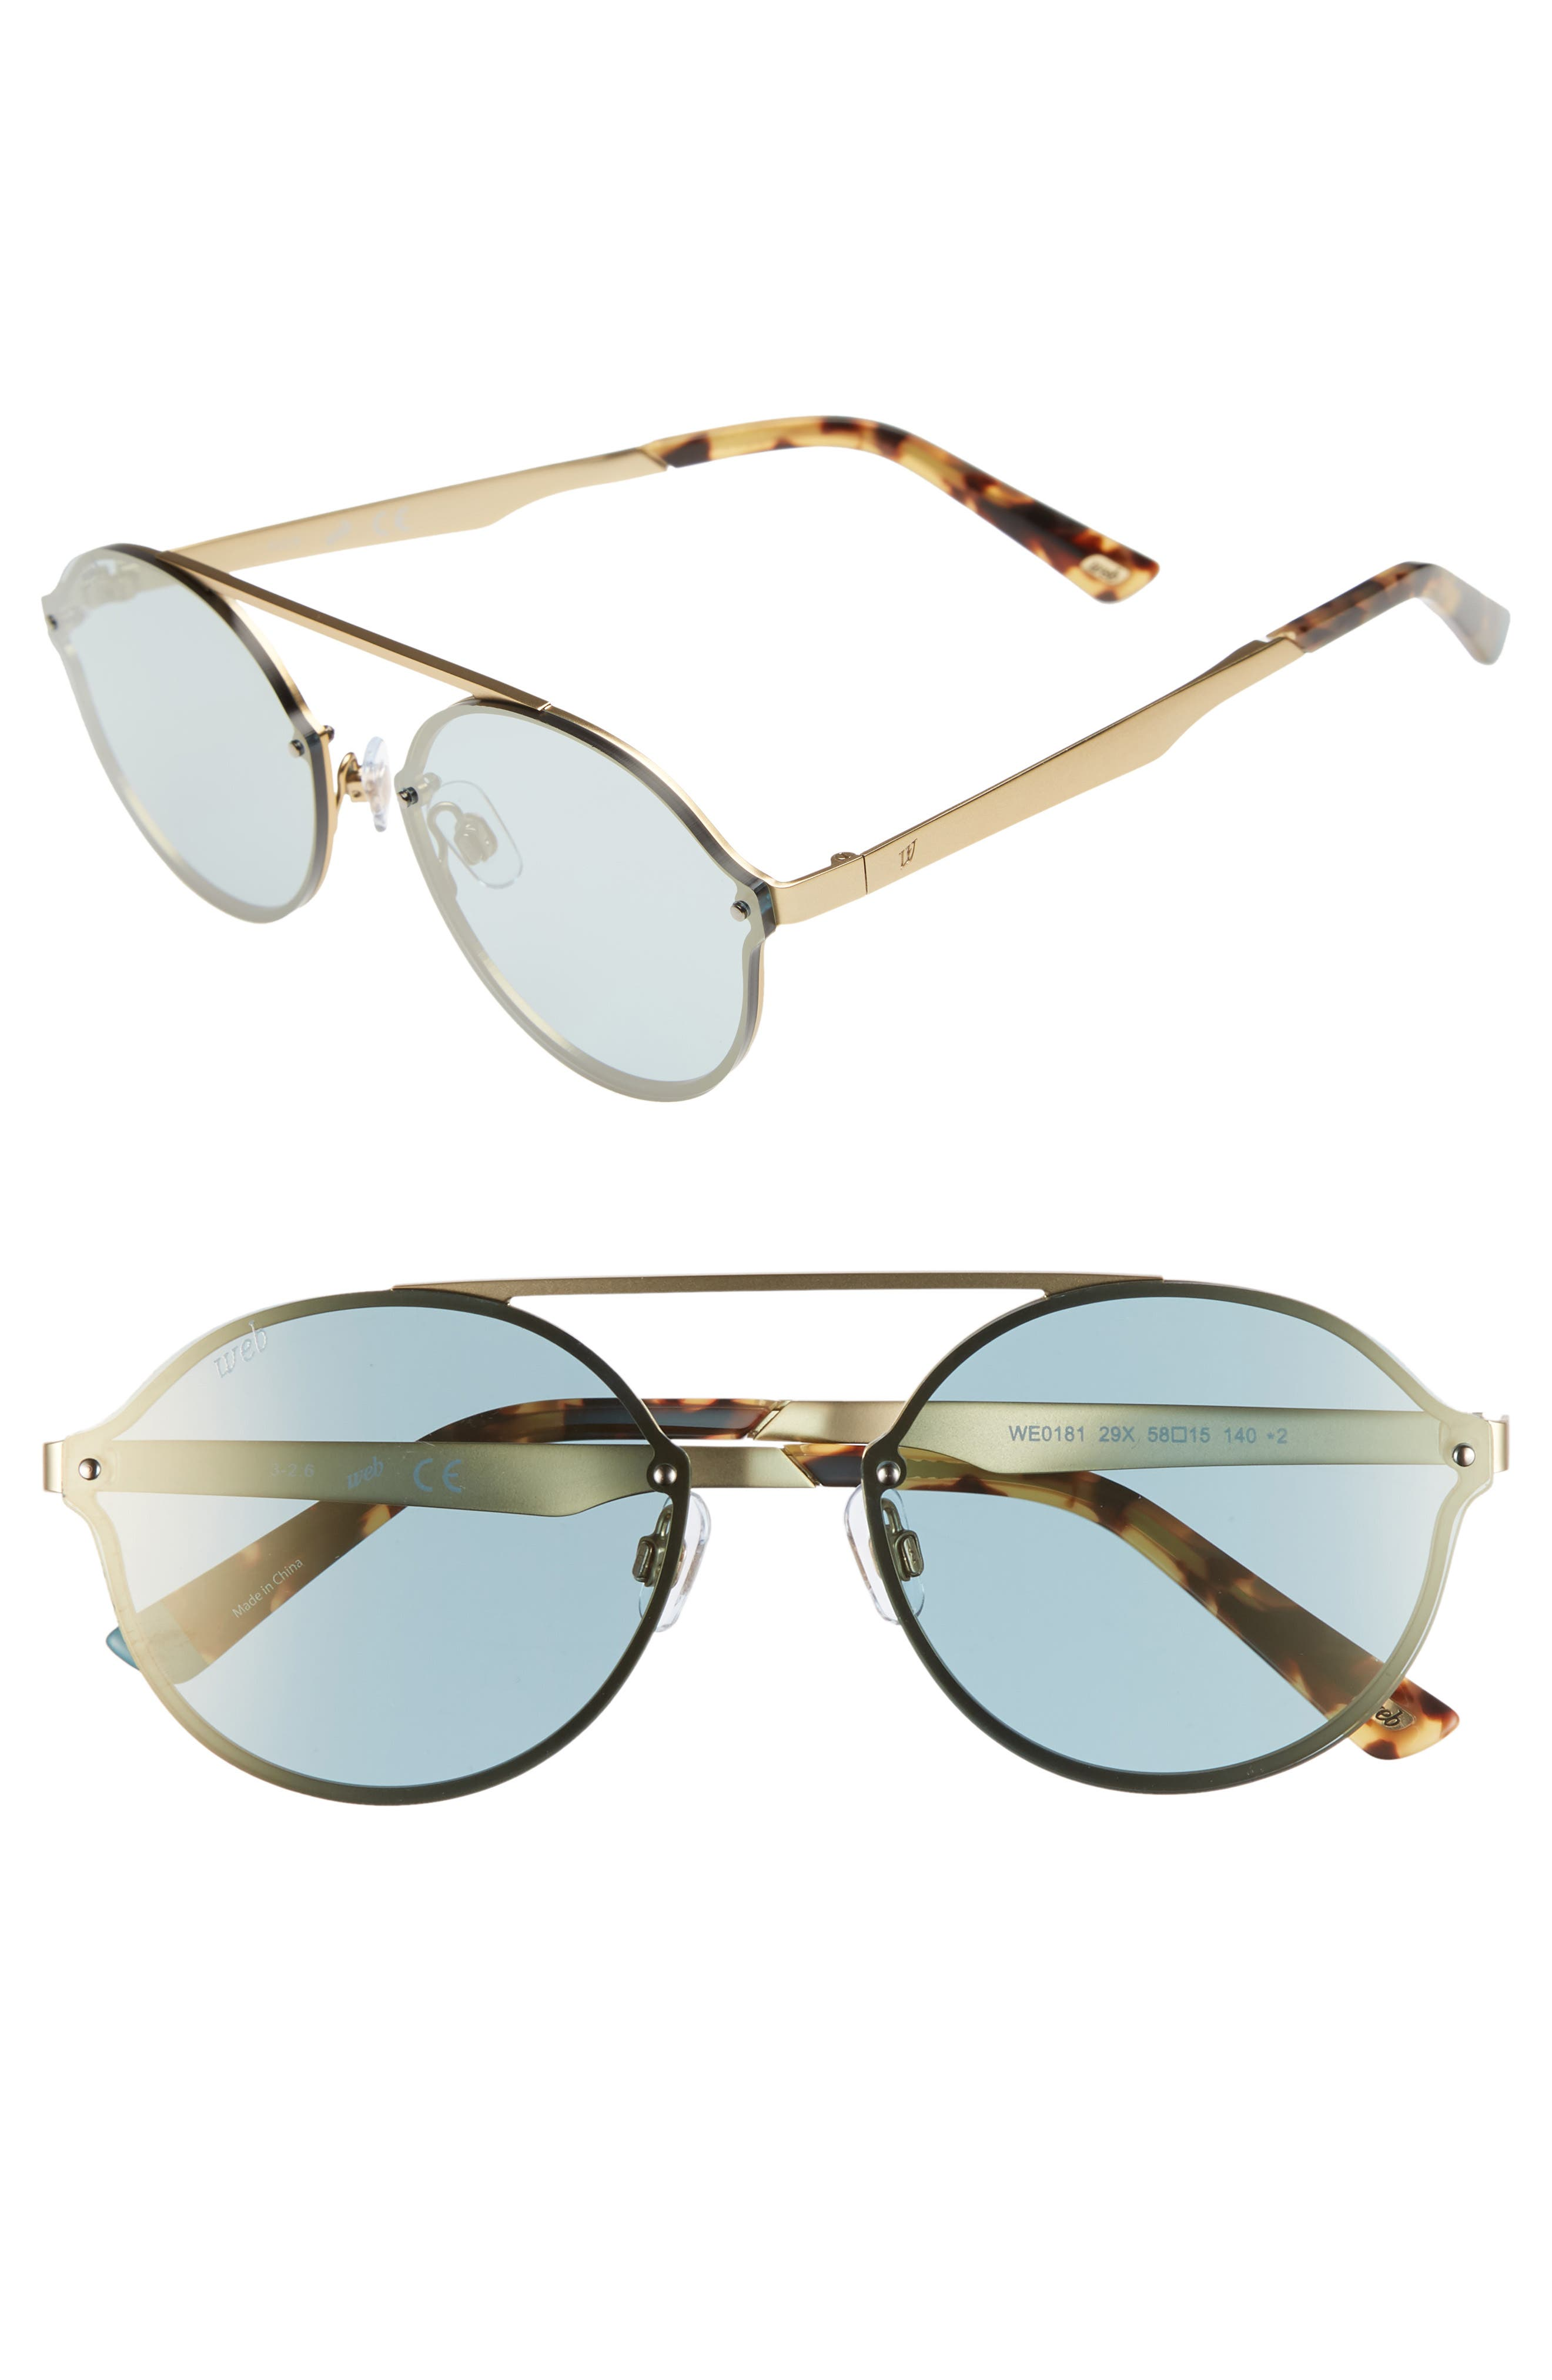 58mm Round Sunglasses,                         Main,                         color, GOLD/ BLUE